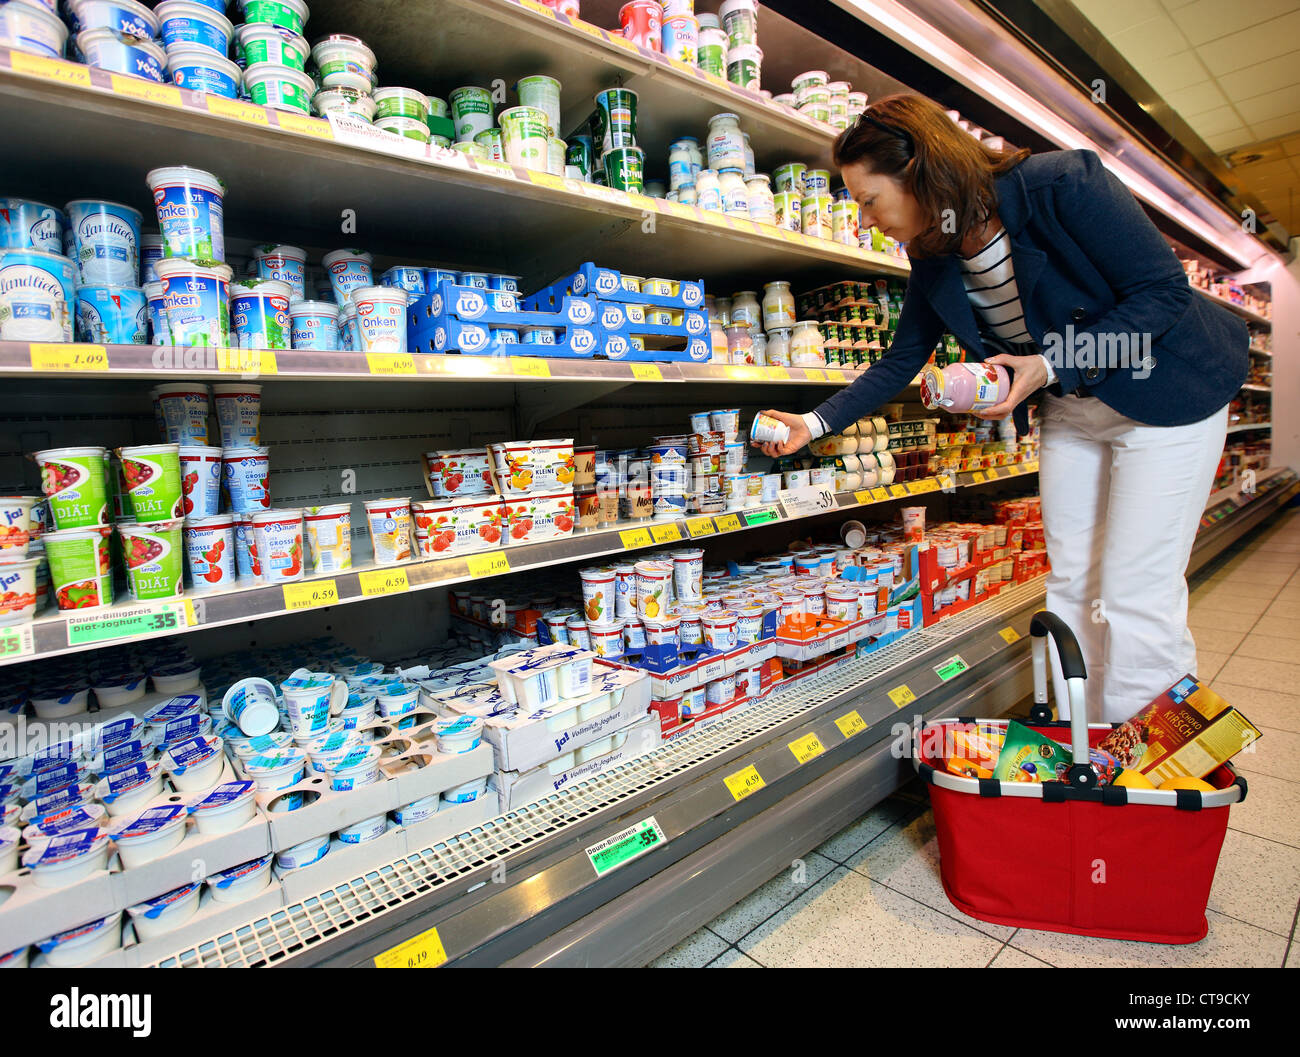 Woman is shopping in a large supermarket. Different products in a refrigerator. - Stock Image